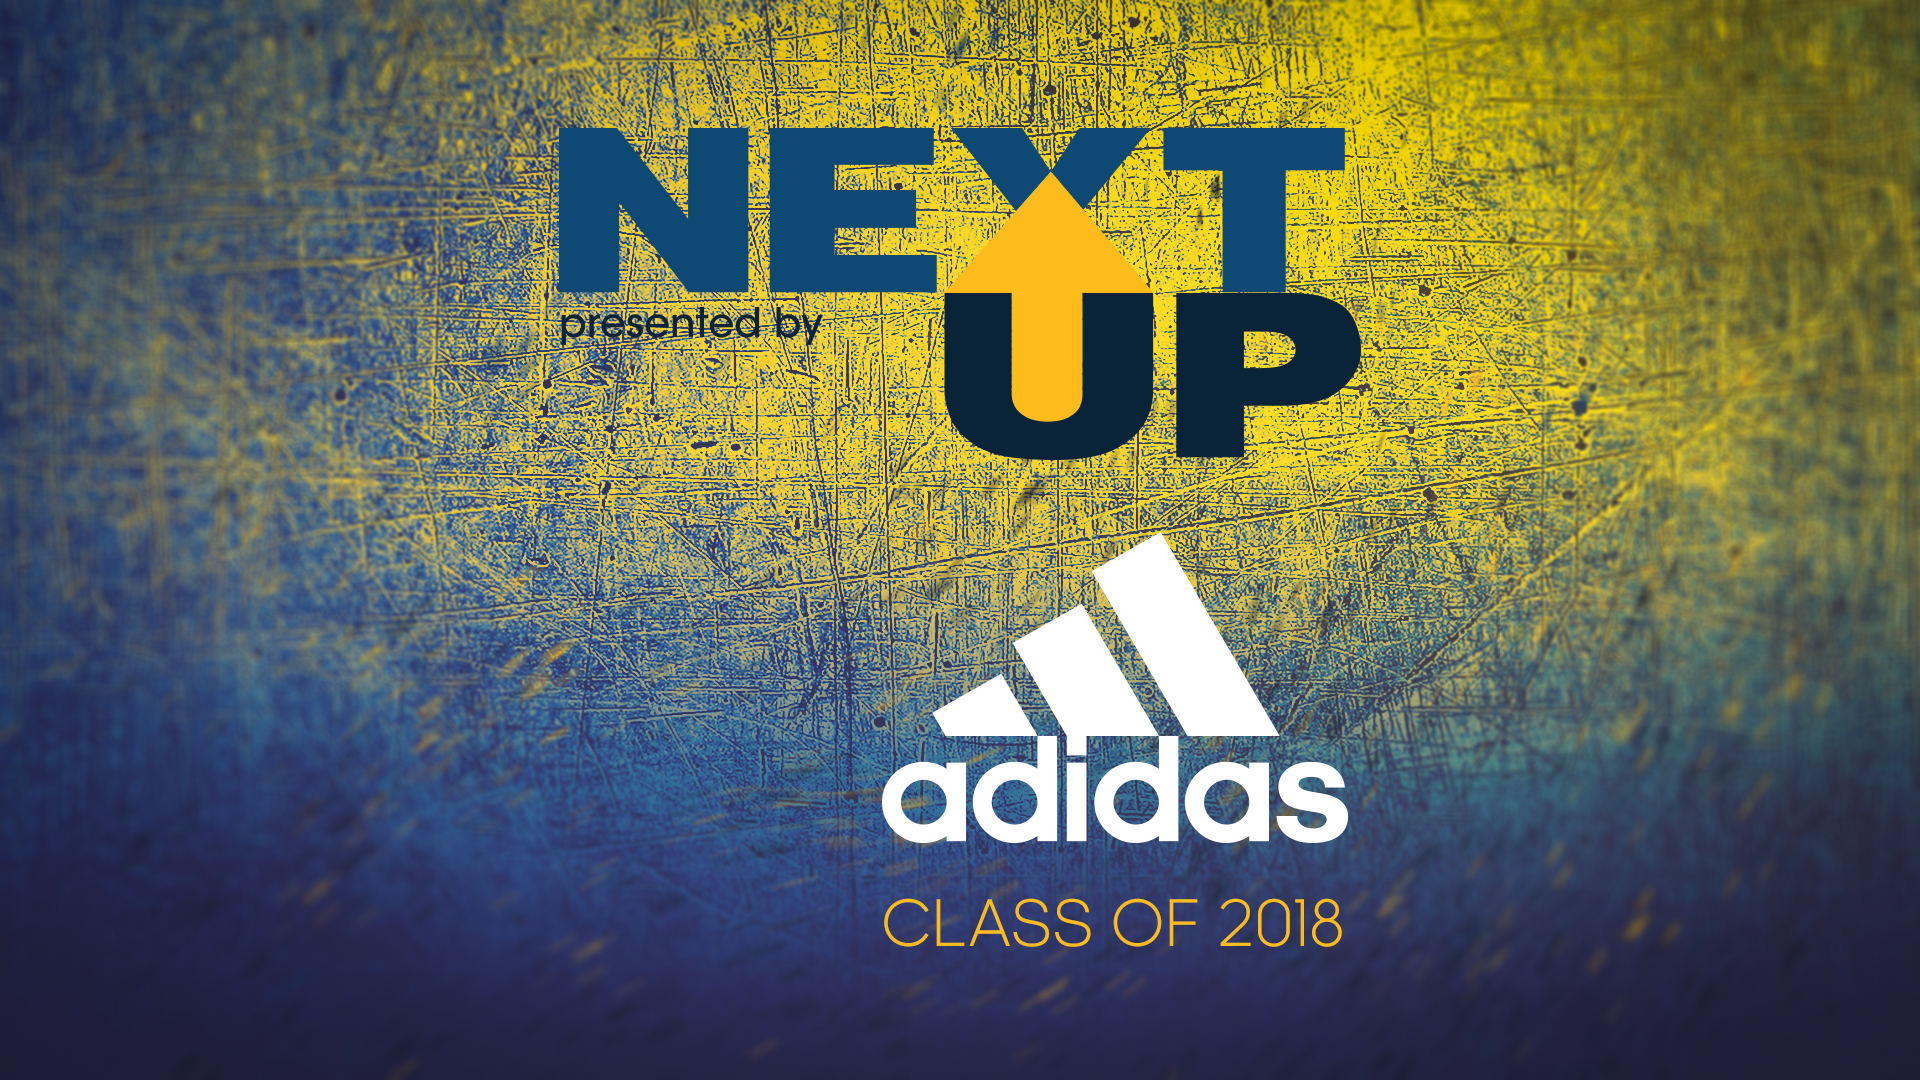 next up presented by adidas